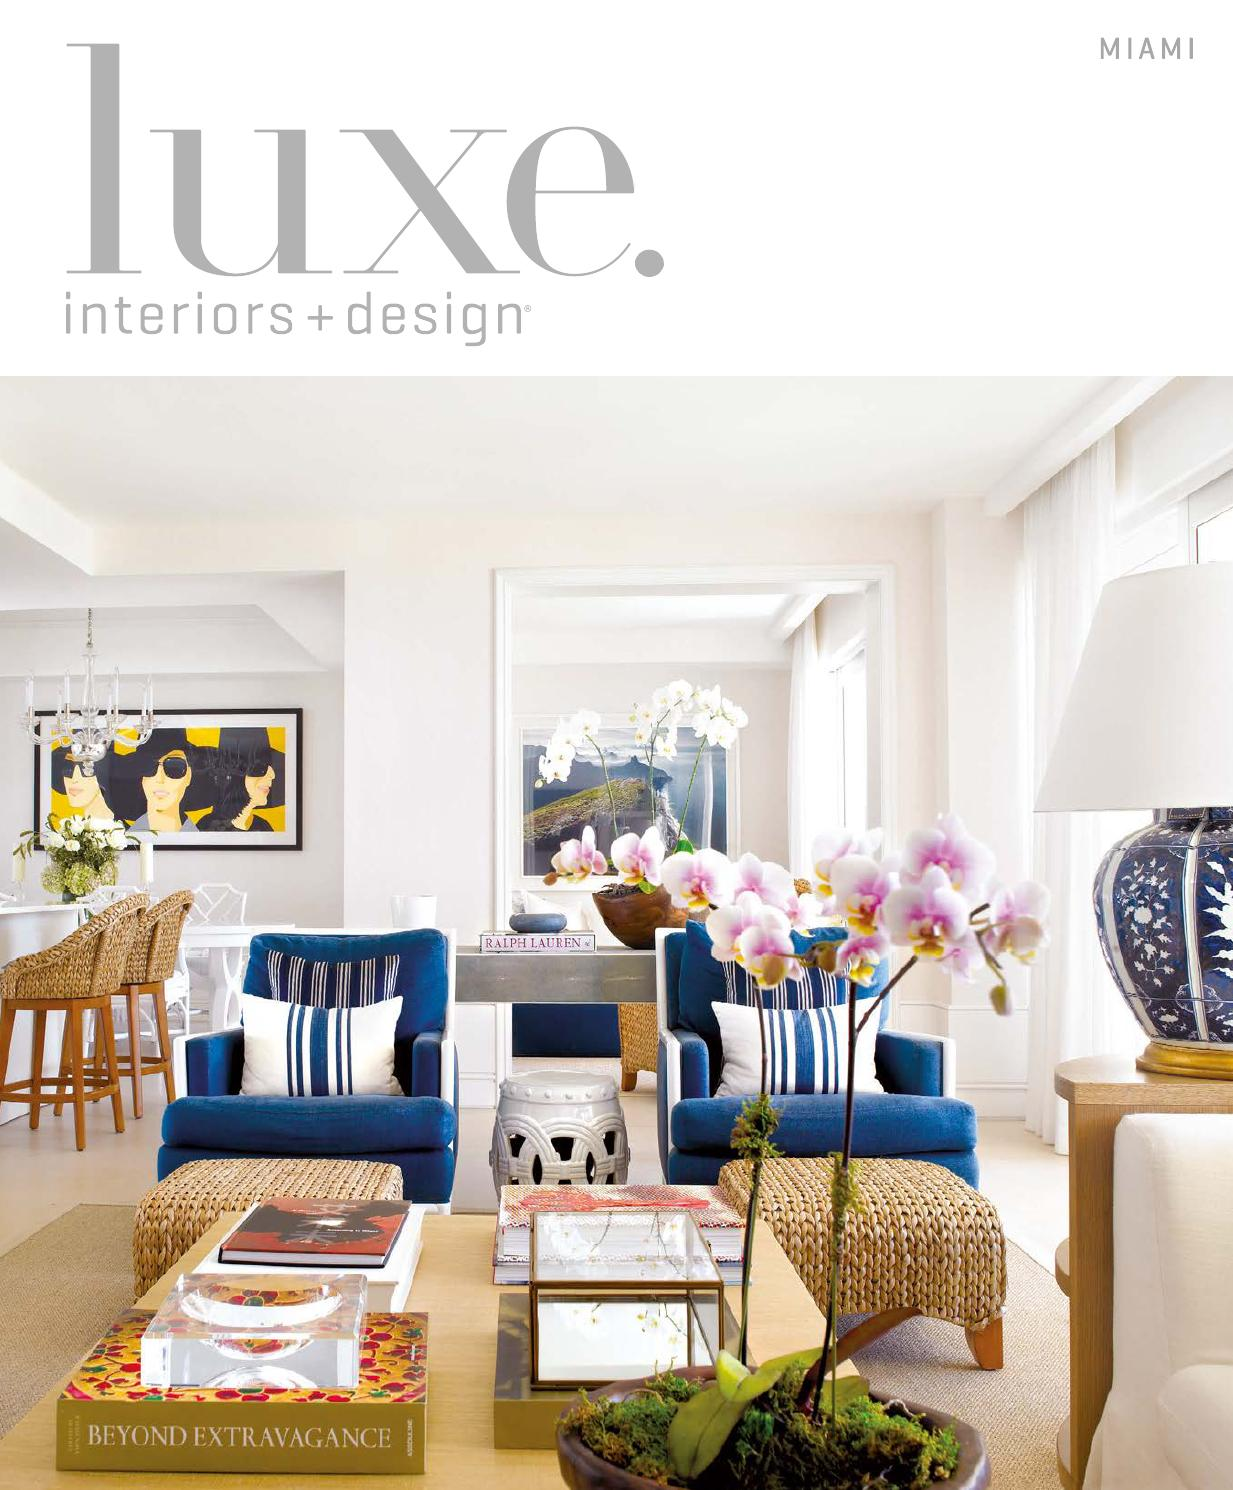 Luxe magazine september 2015 miami by sandow issuu for Miami interior design magazine